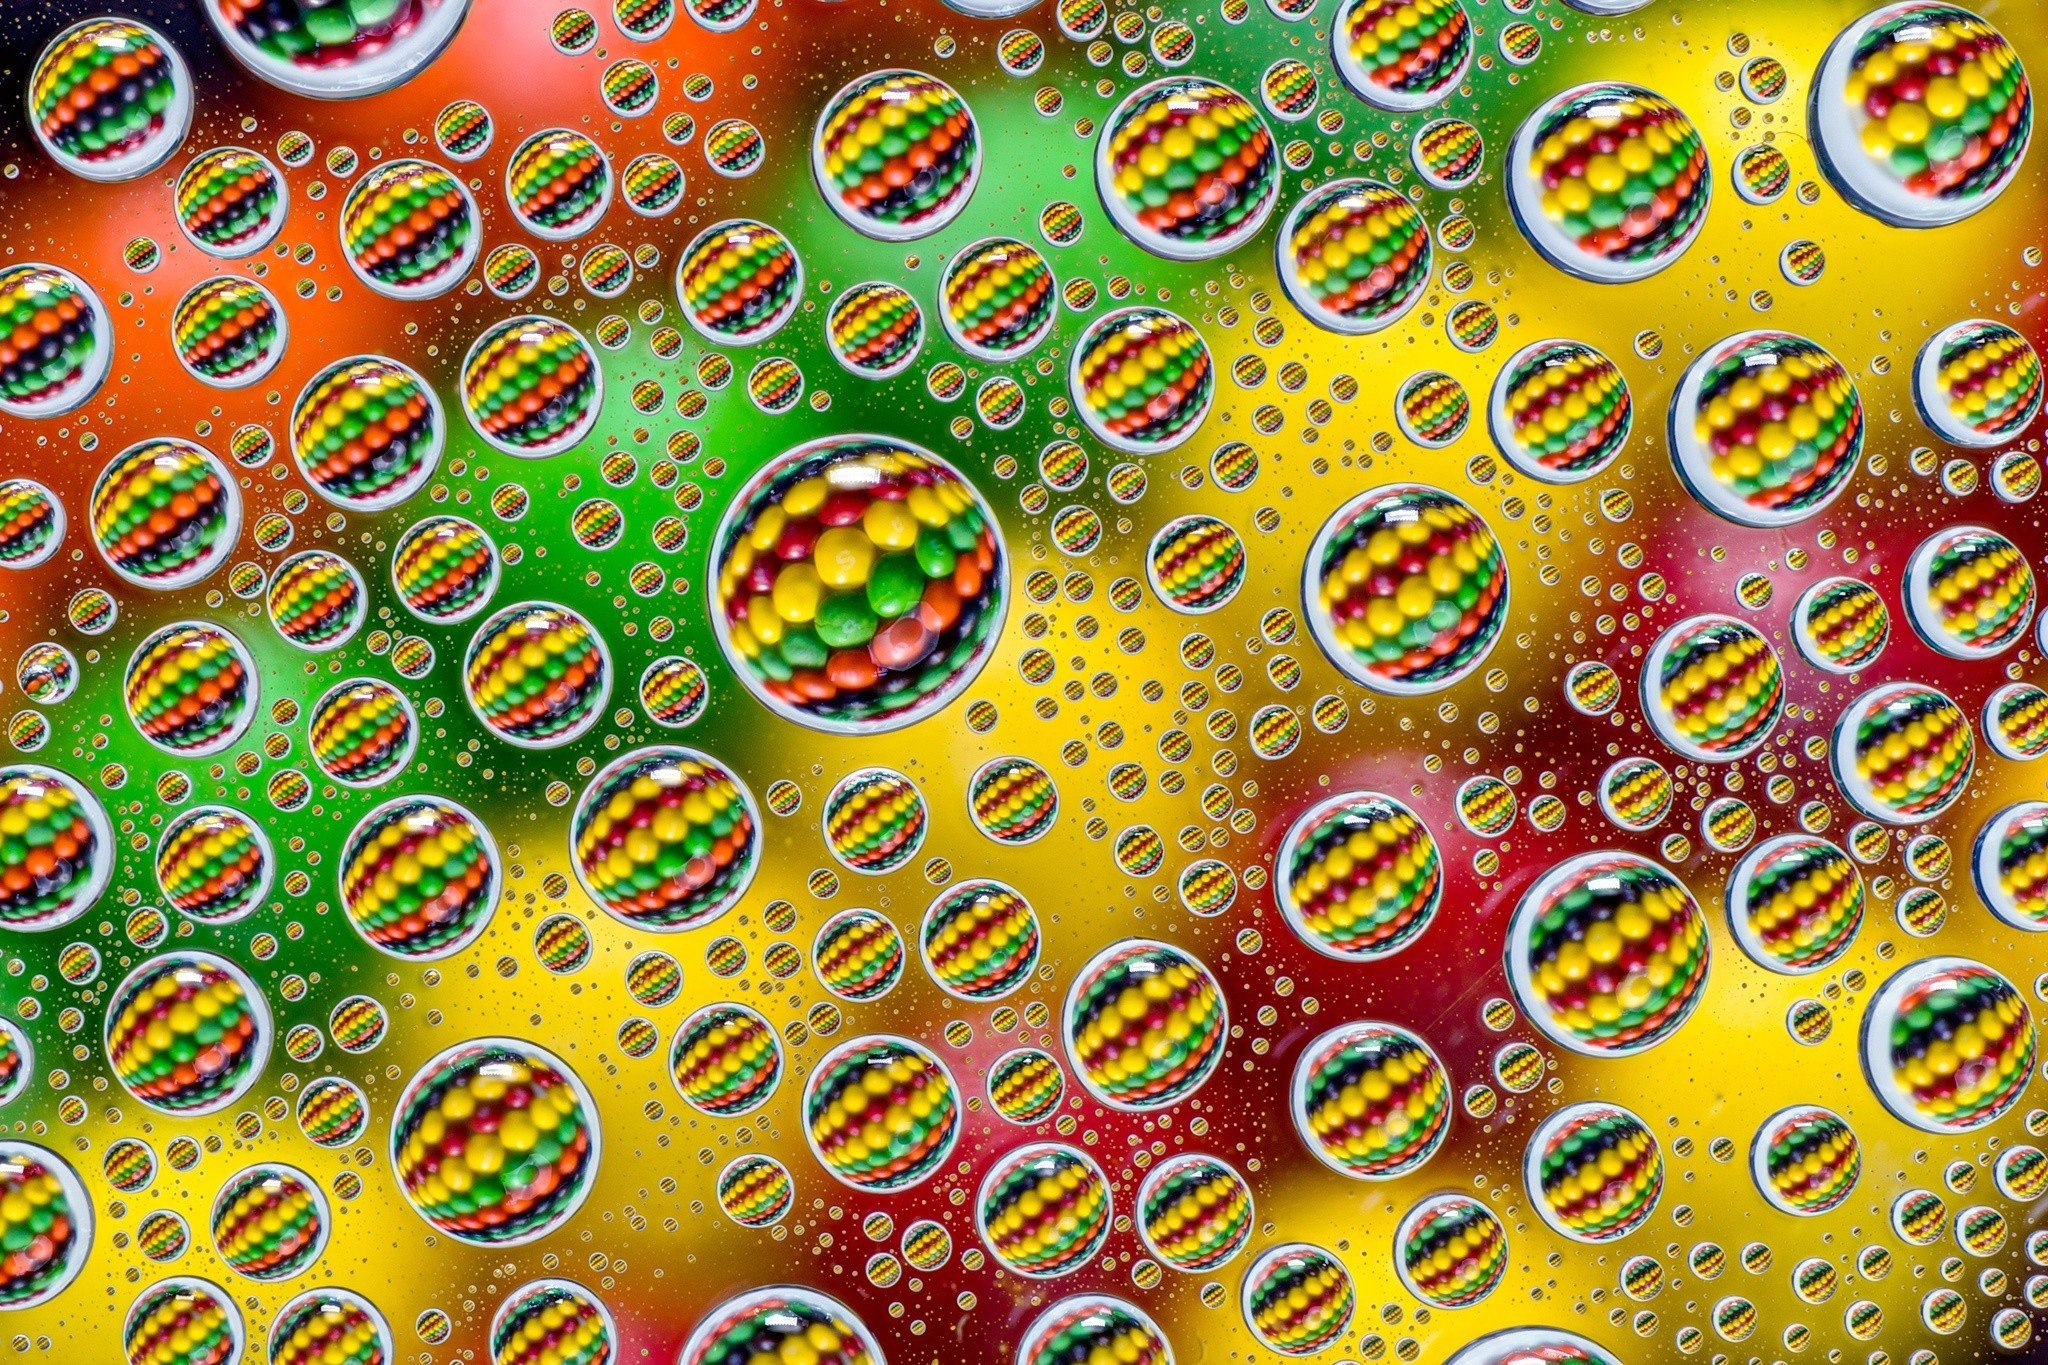 Res: 2048x1365, colorful, Abstract, Water drops, Skittles, Photography, Circle, Depth of  field, Reflection Wallpapers HD / Desktop and Mobile Backgrounds